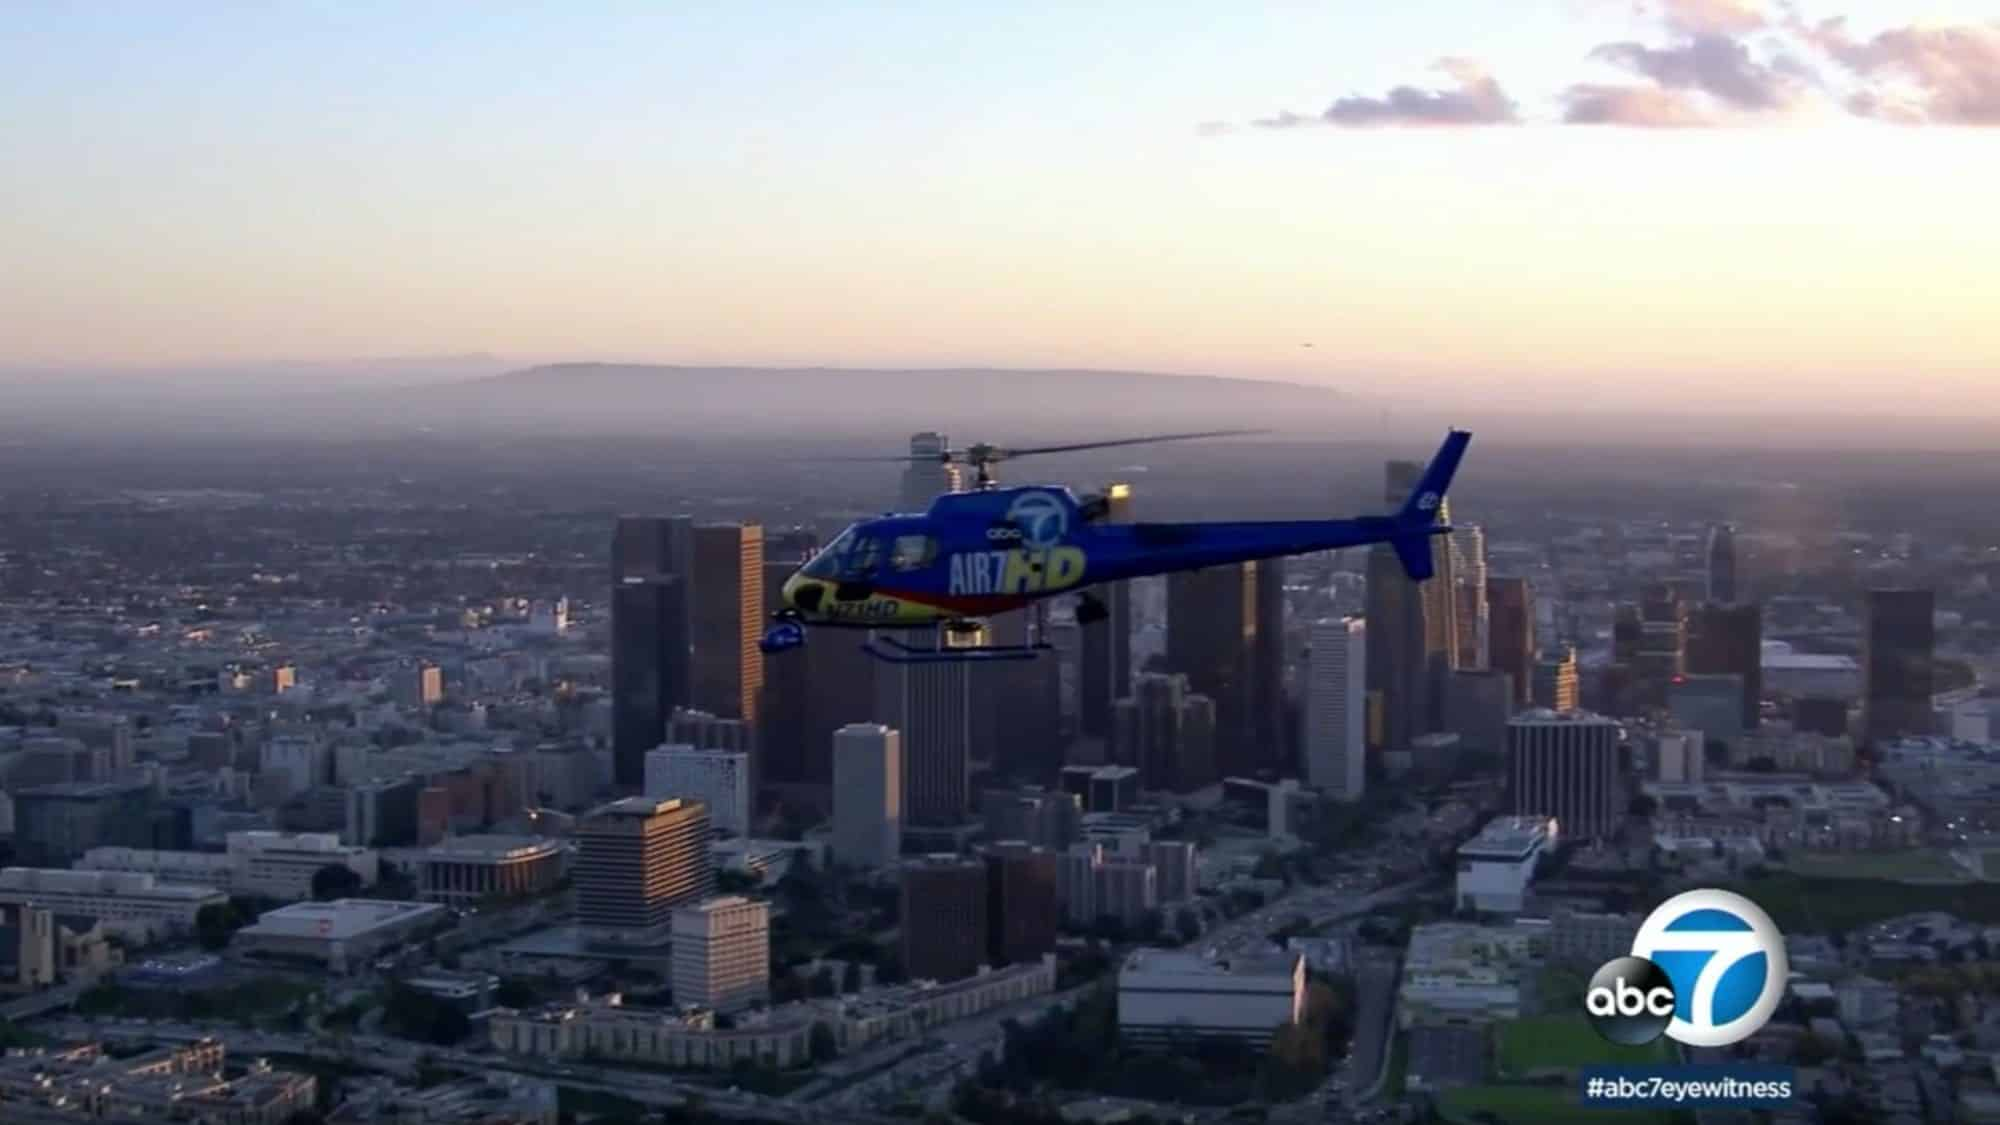 News helicopter likely struck by drone, says NTSB